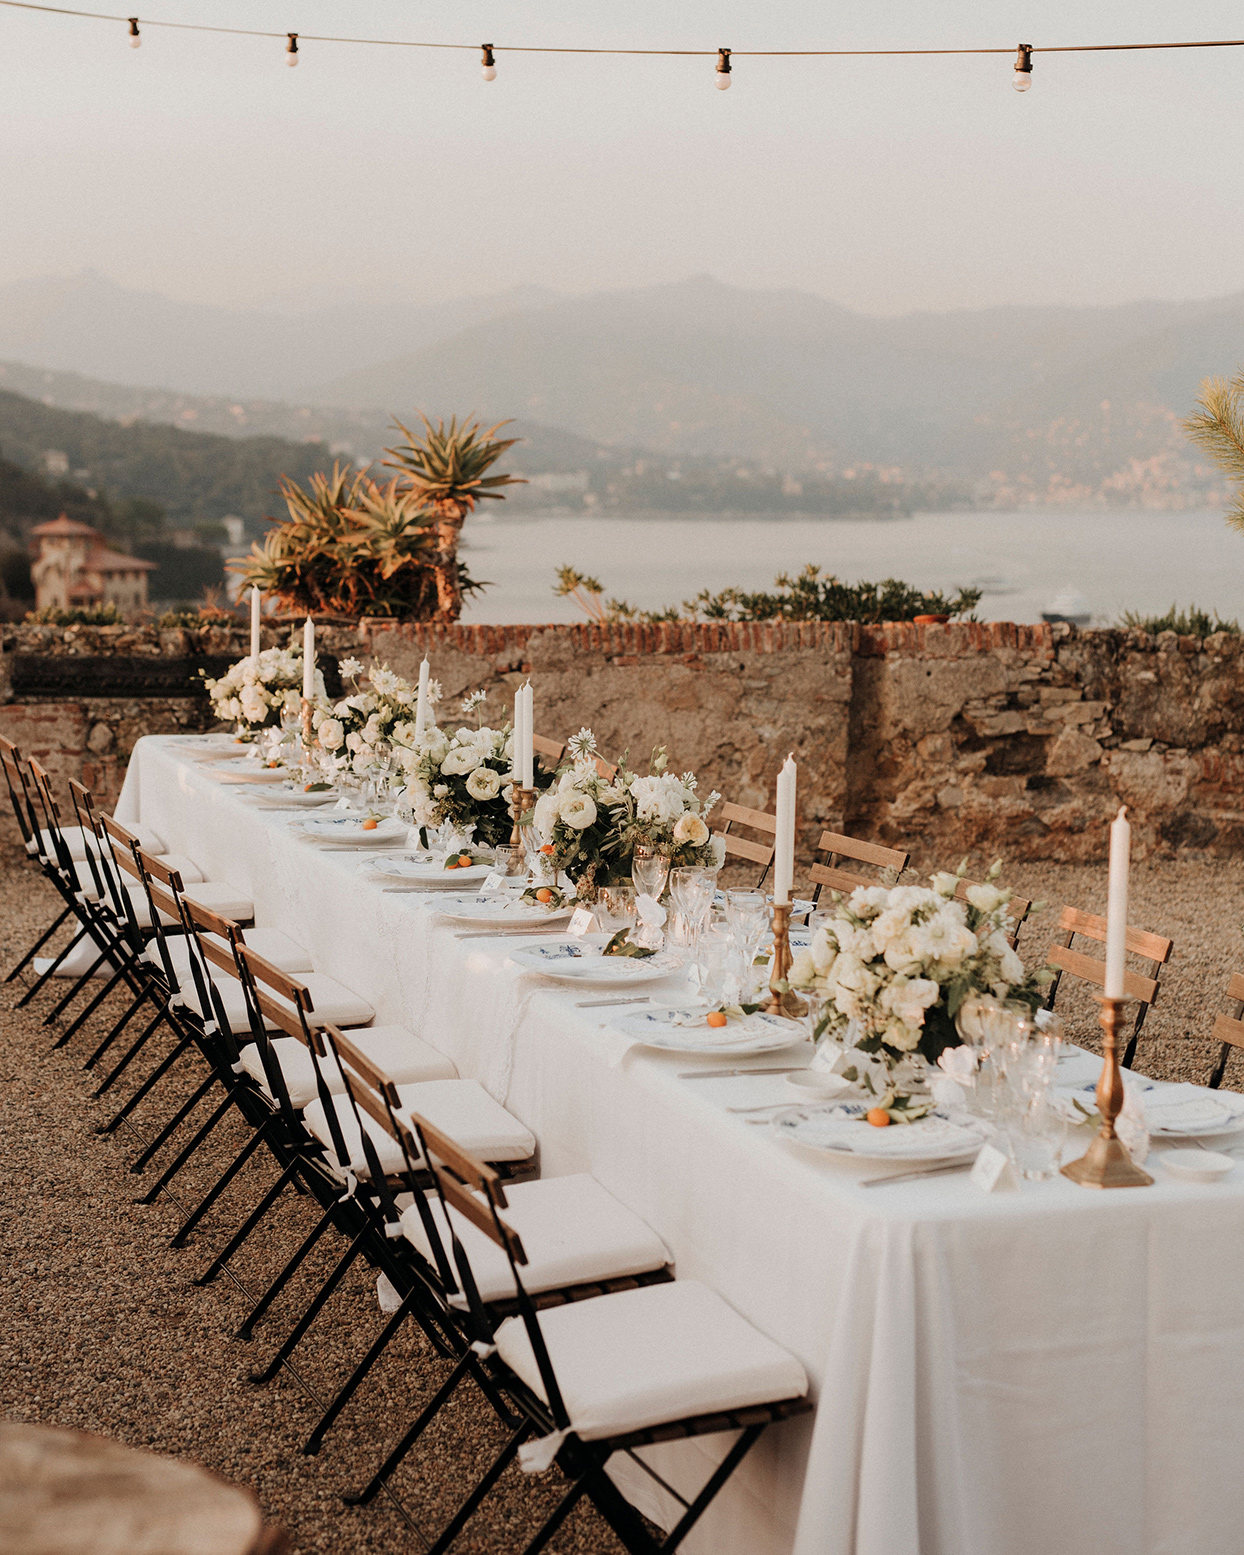 jaclyn antonio wedding reception long table overlooking water